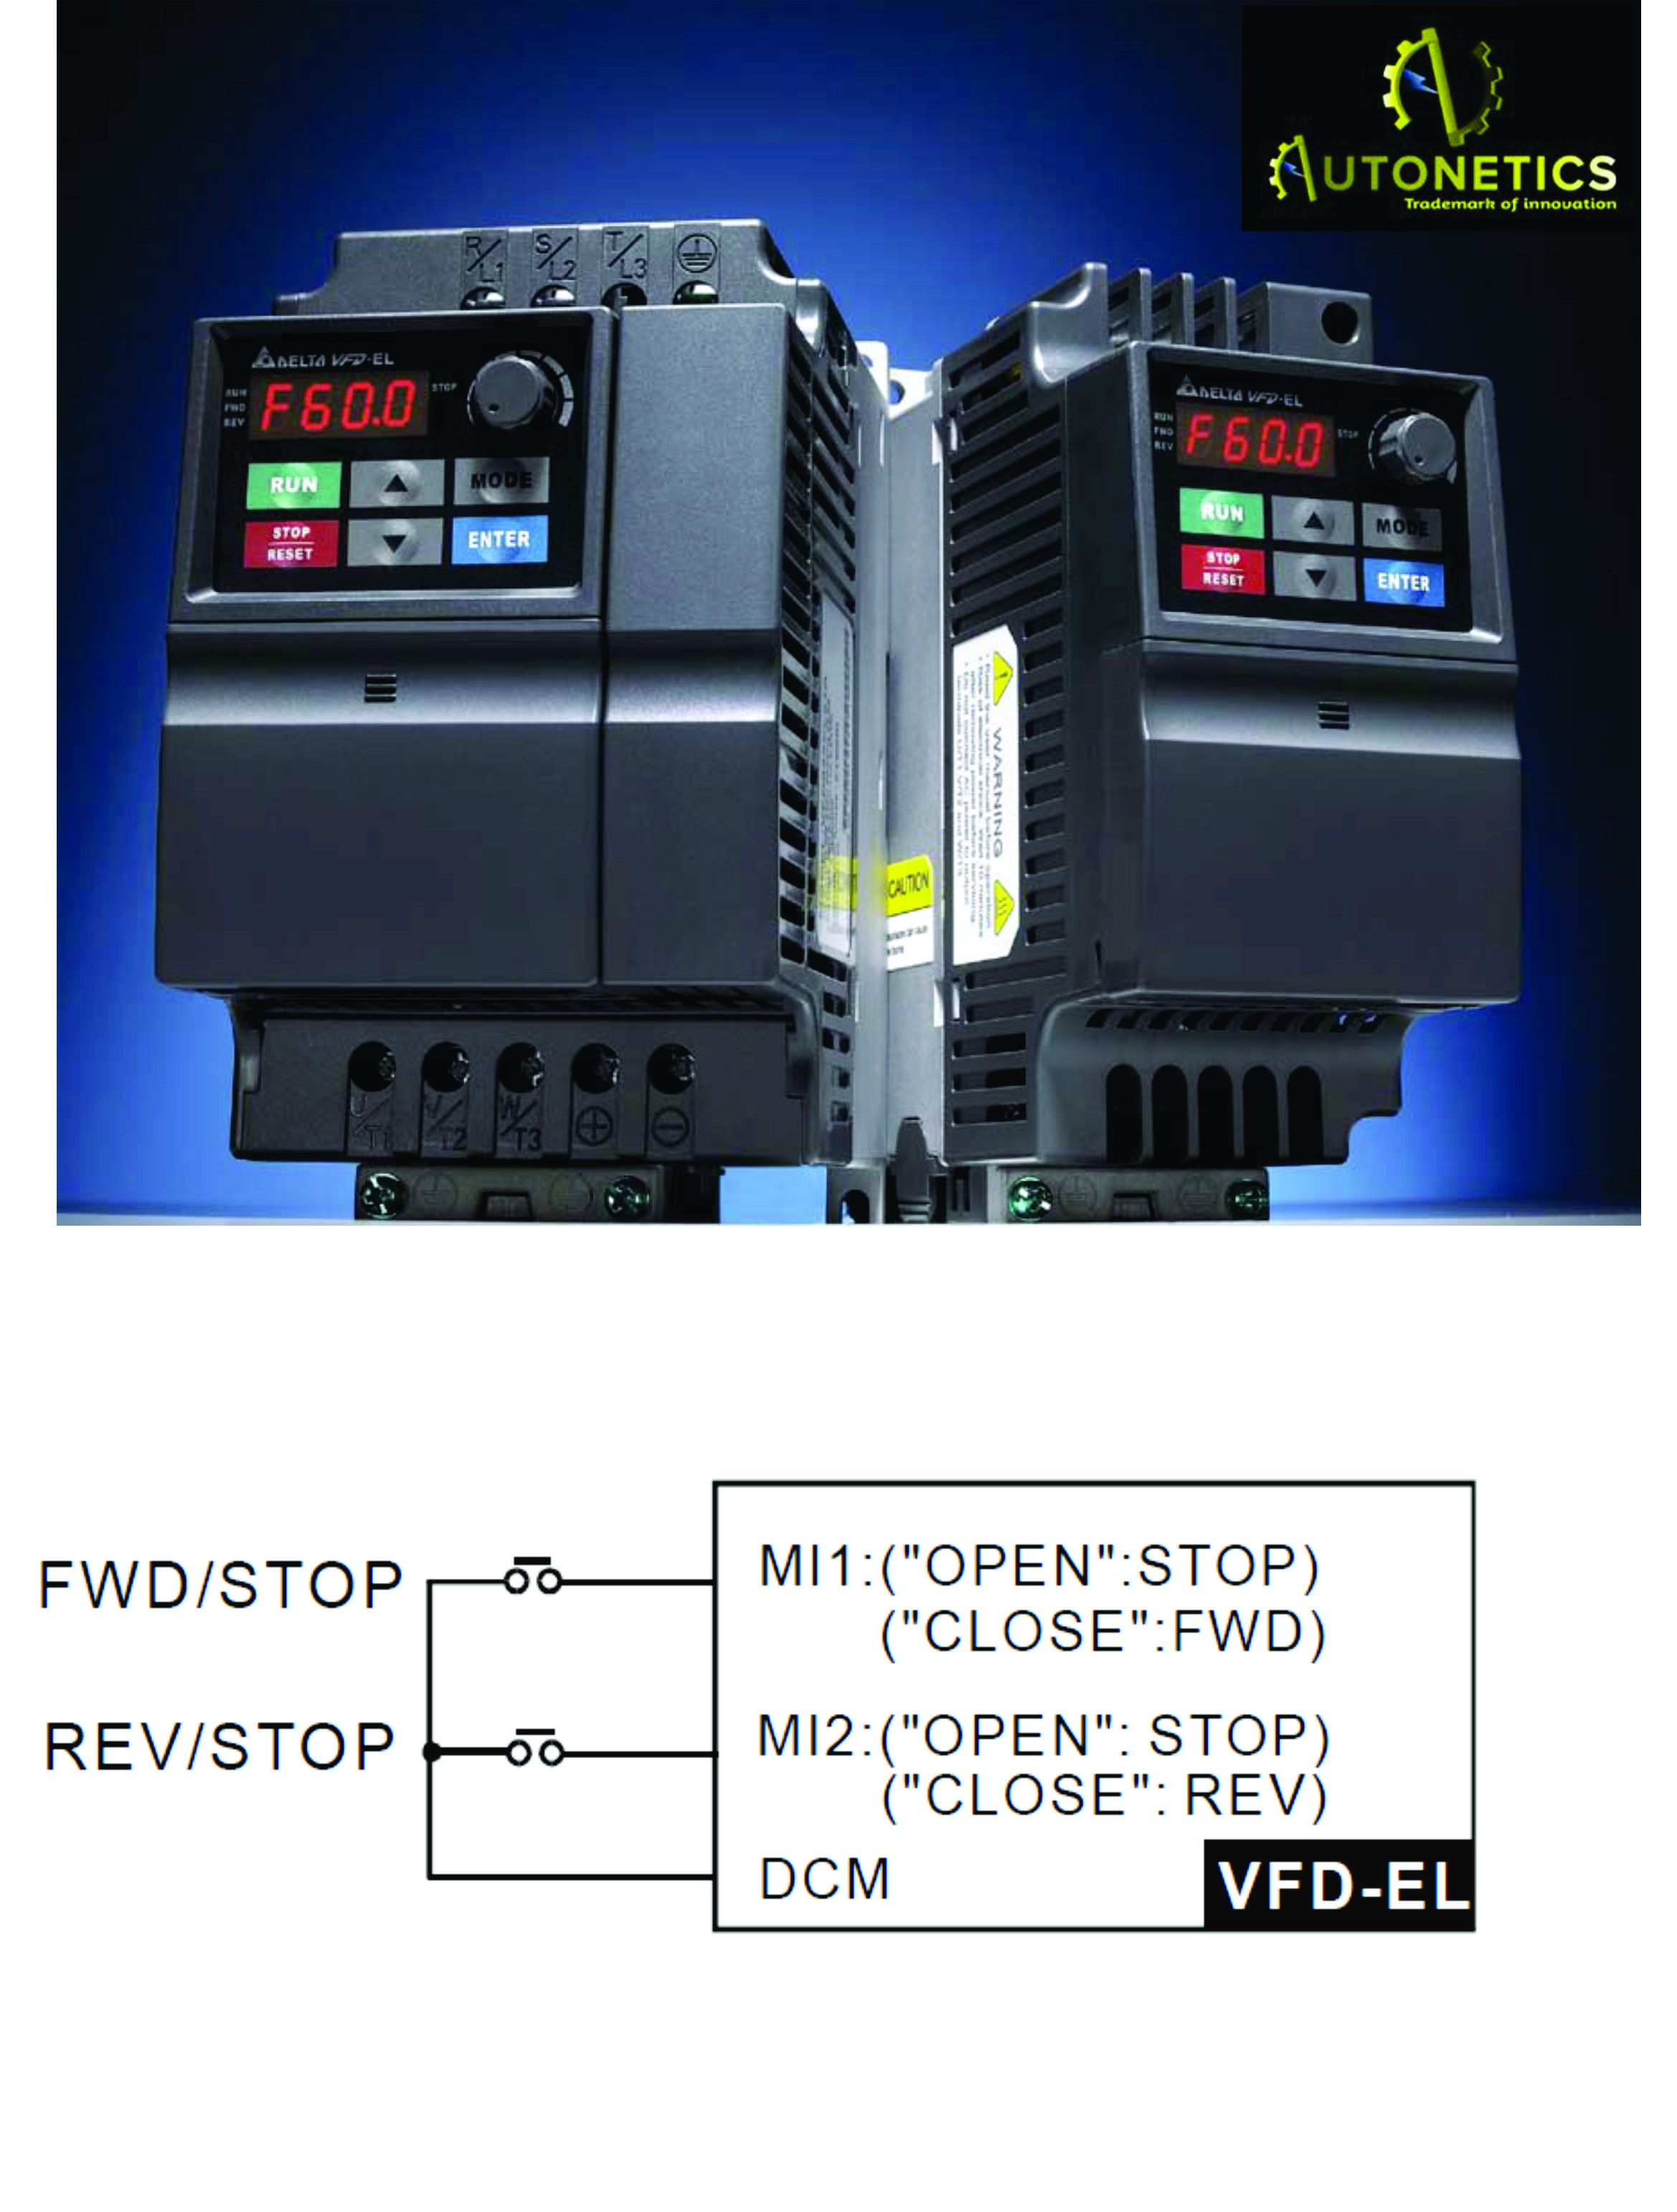 delta el series vfd 2 wire connection join our new batches of plc and scada for more visit www autoneticstraining com [ 2338 x 3084 Pixel ]